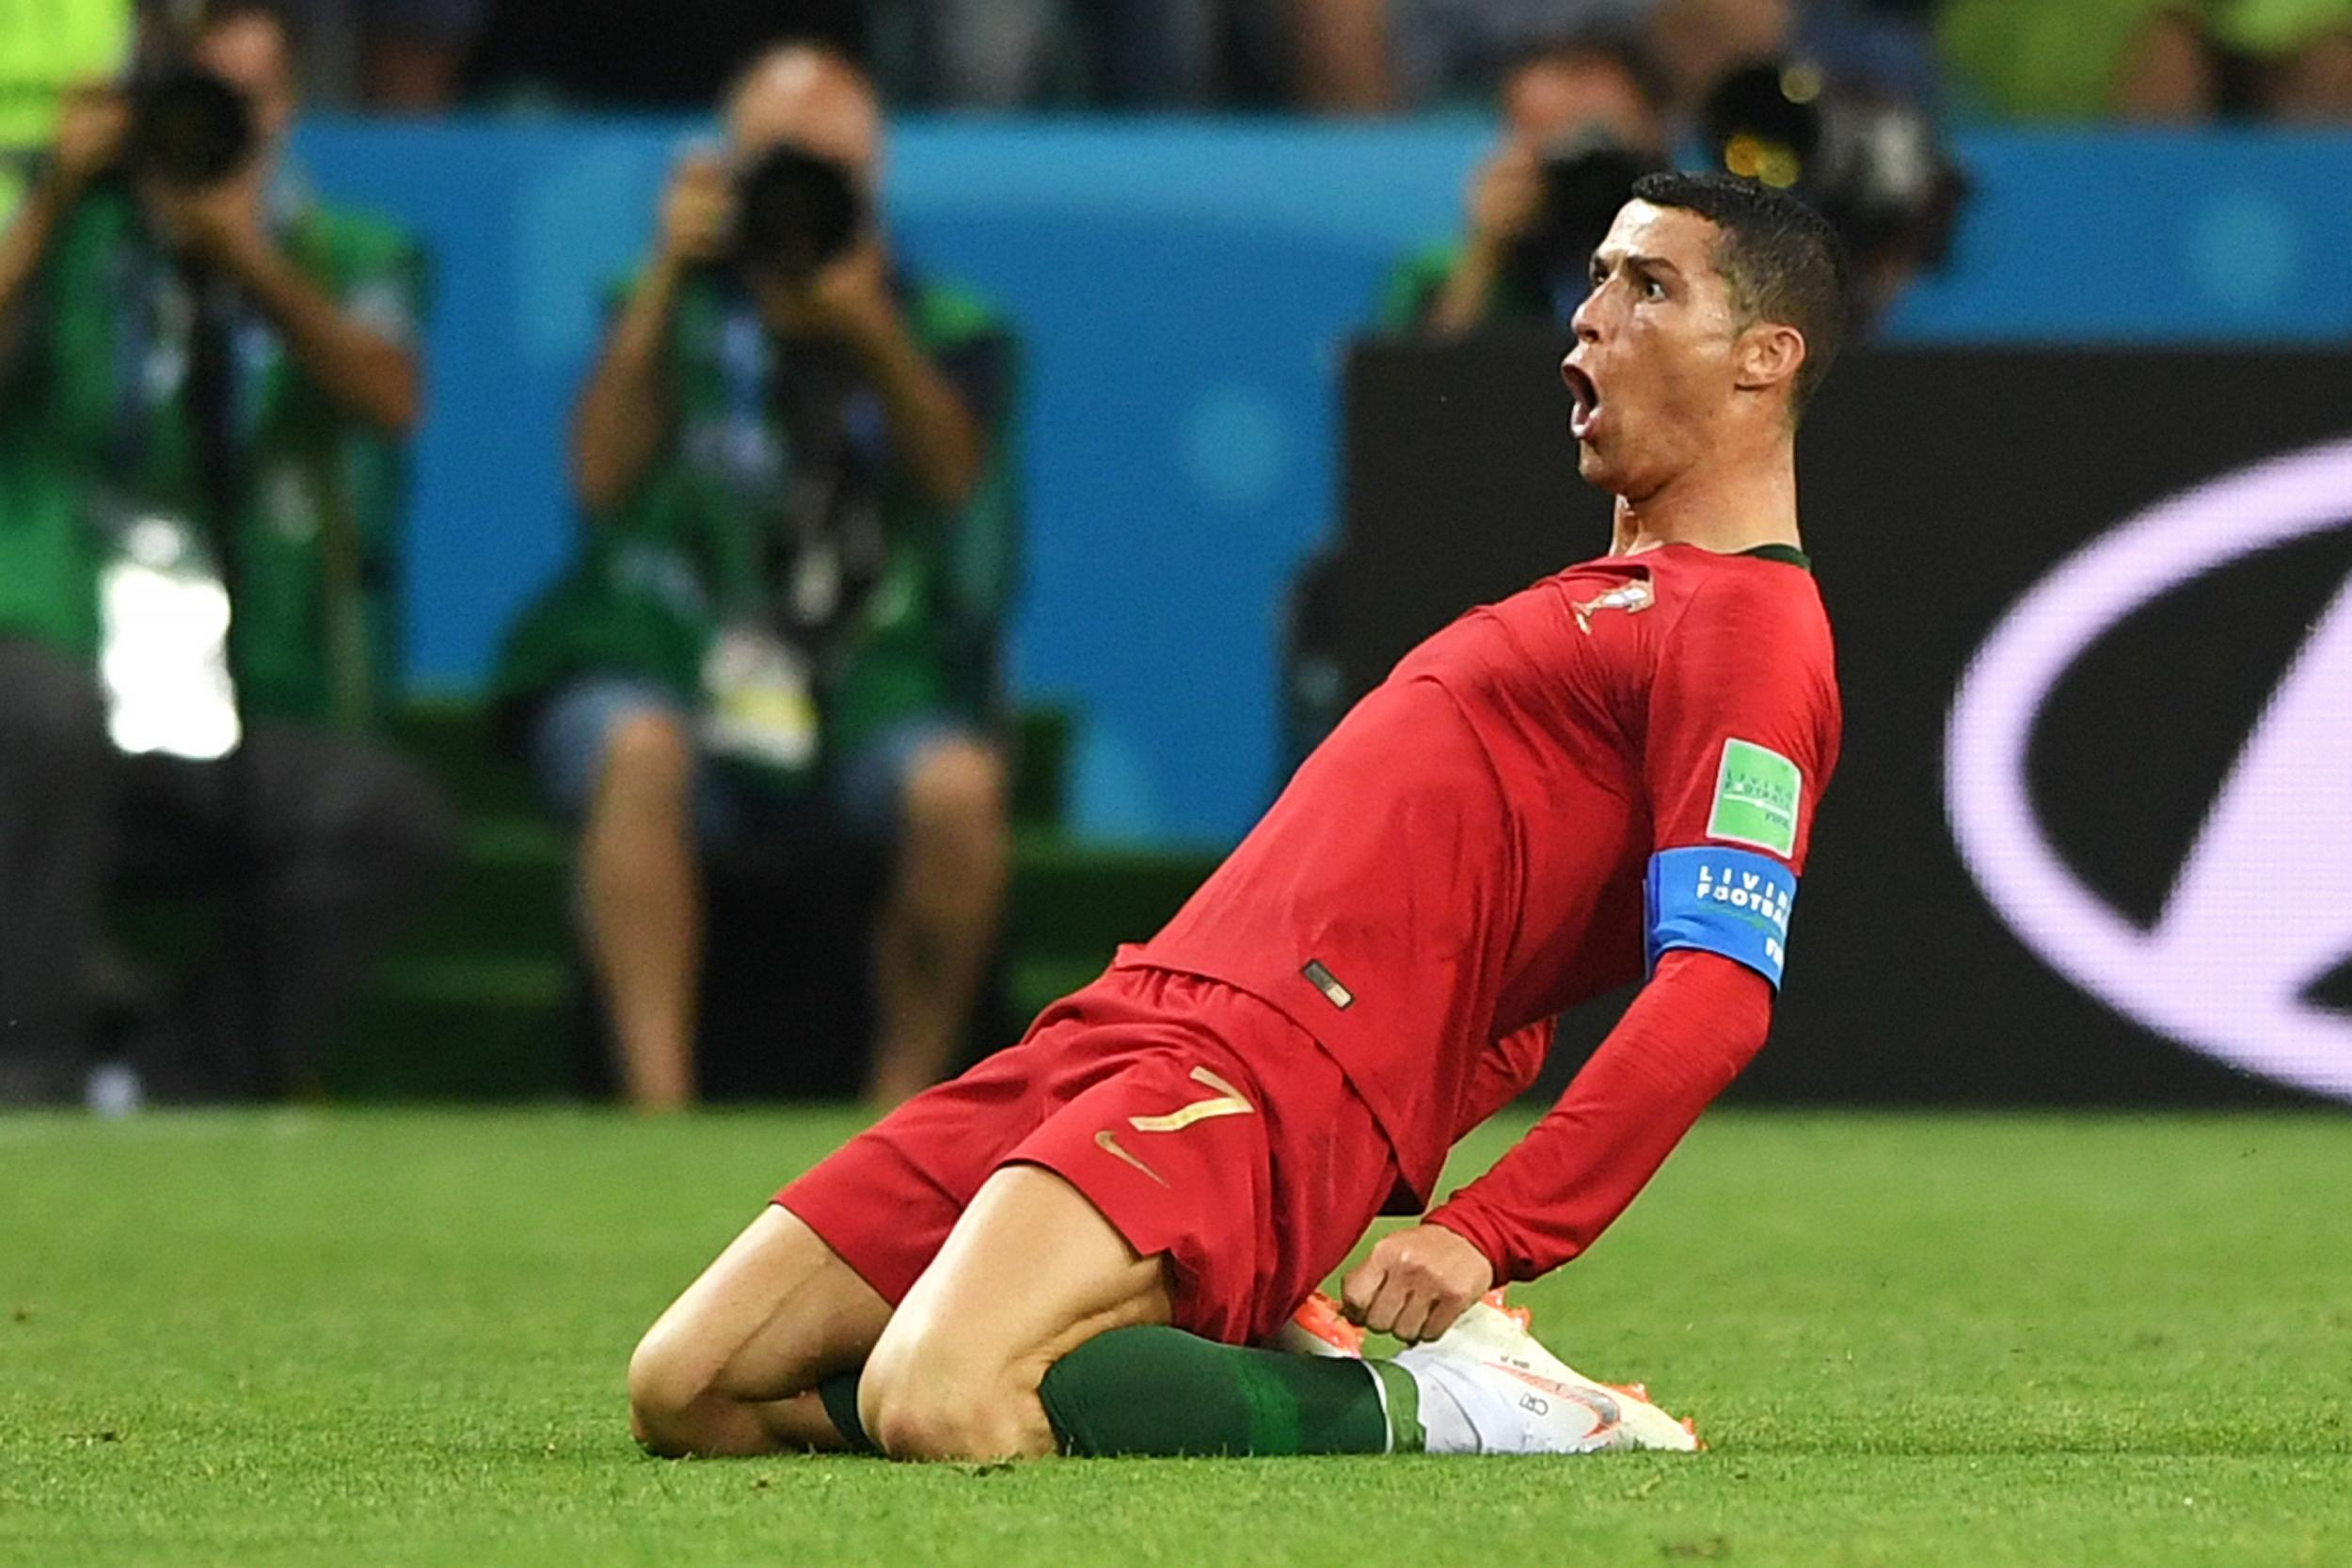 Cristiano Ronaldo World Cup 2018 hat-trick goal  Portugal star makes  history with stunning free kick against Spain  9e11d0e30bc